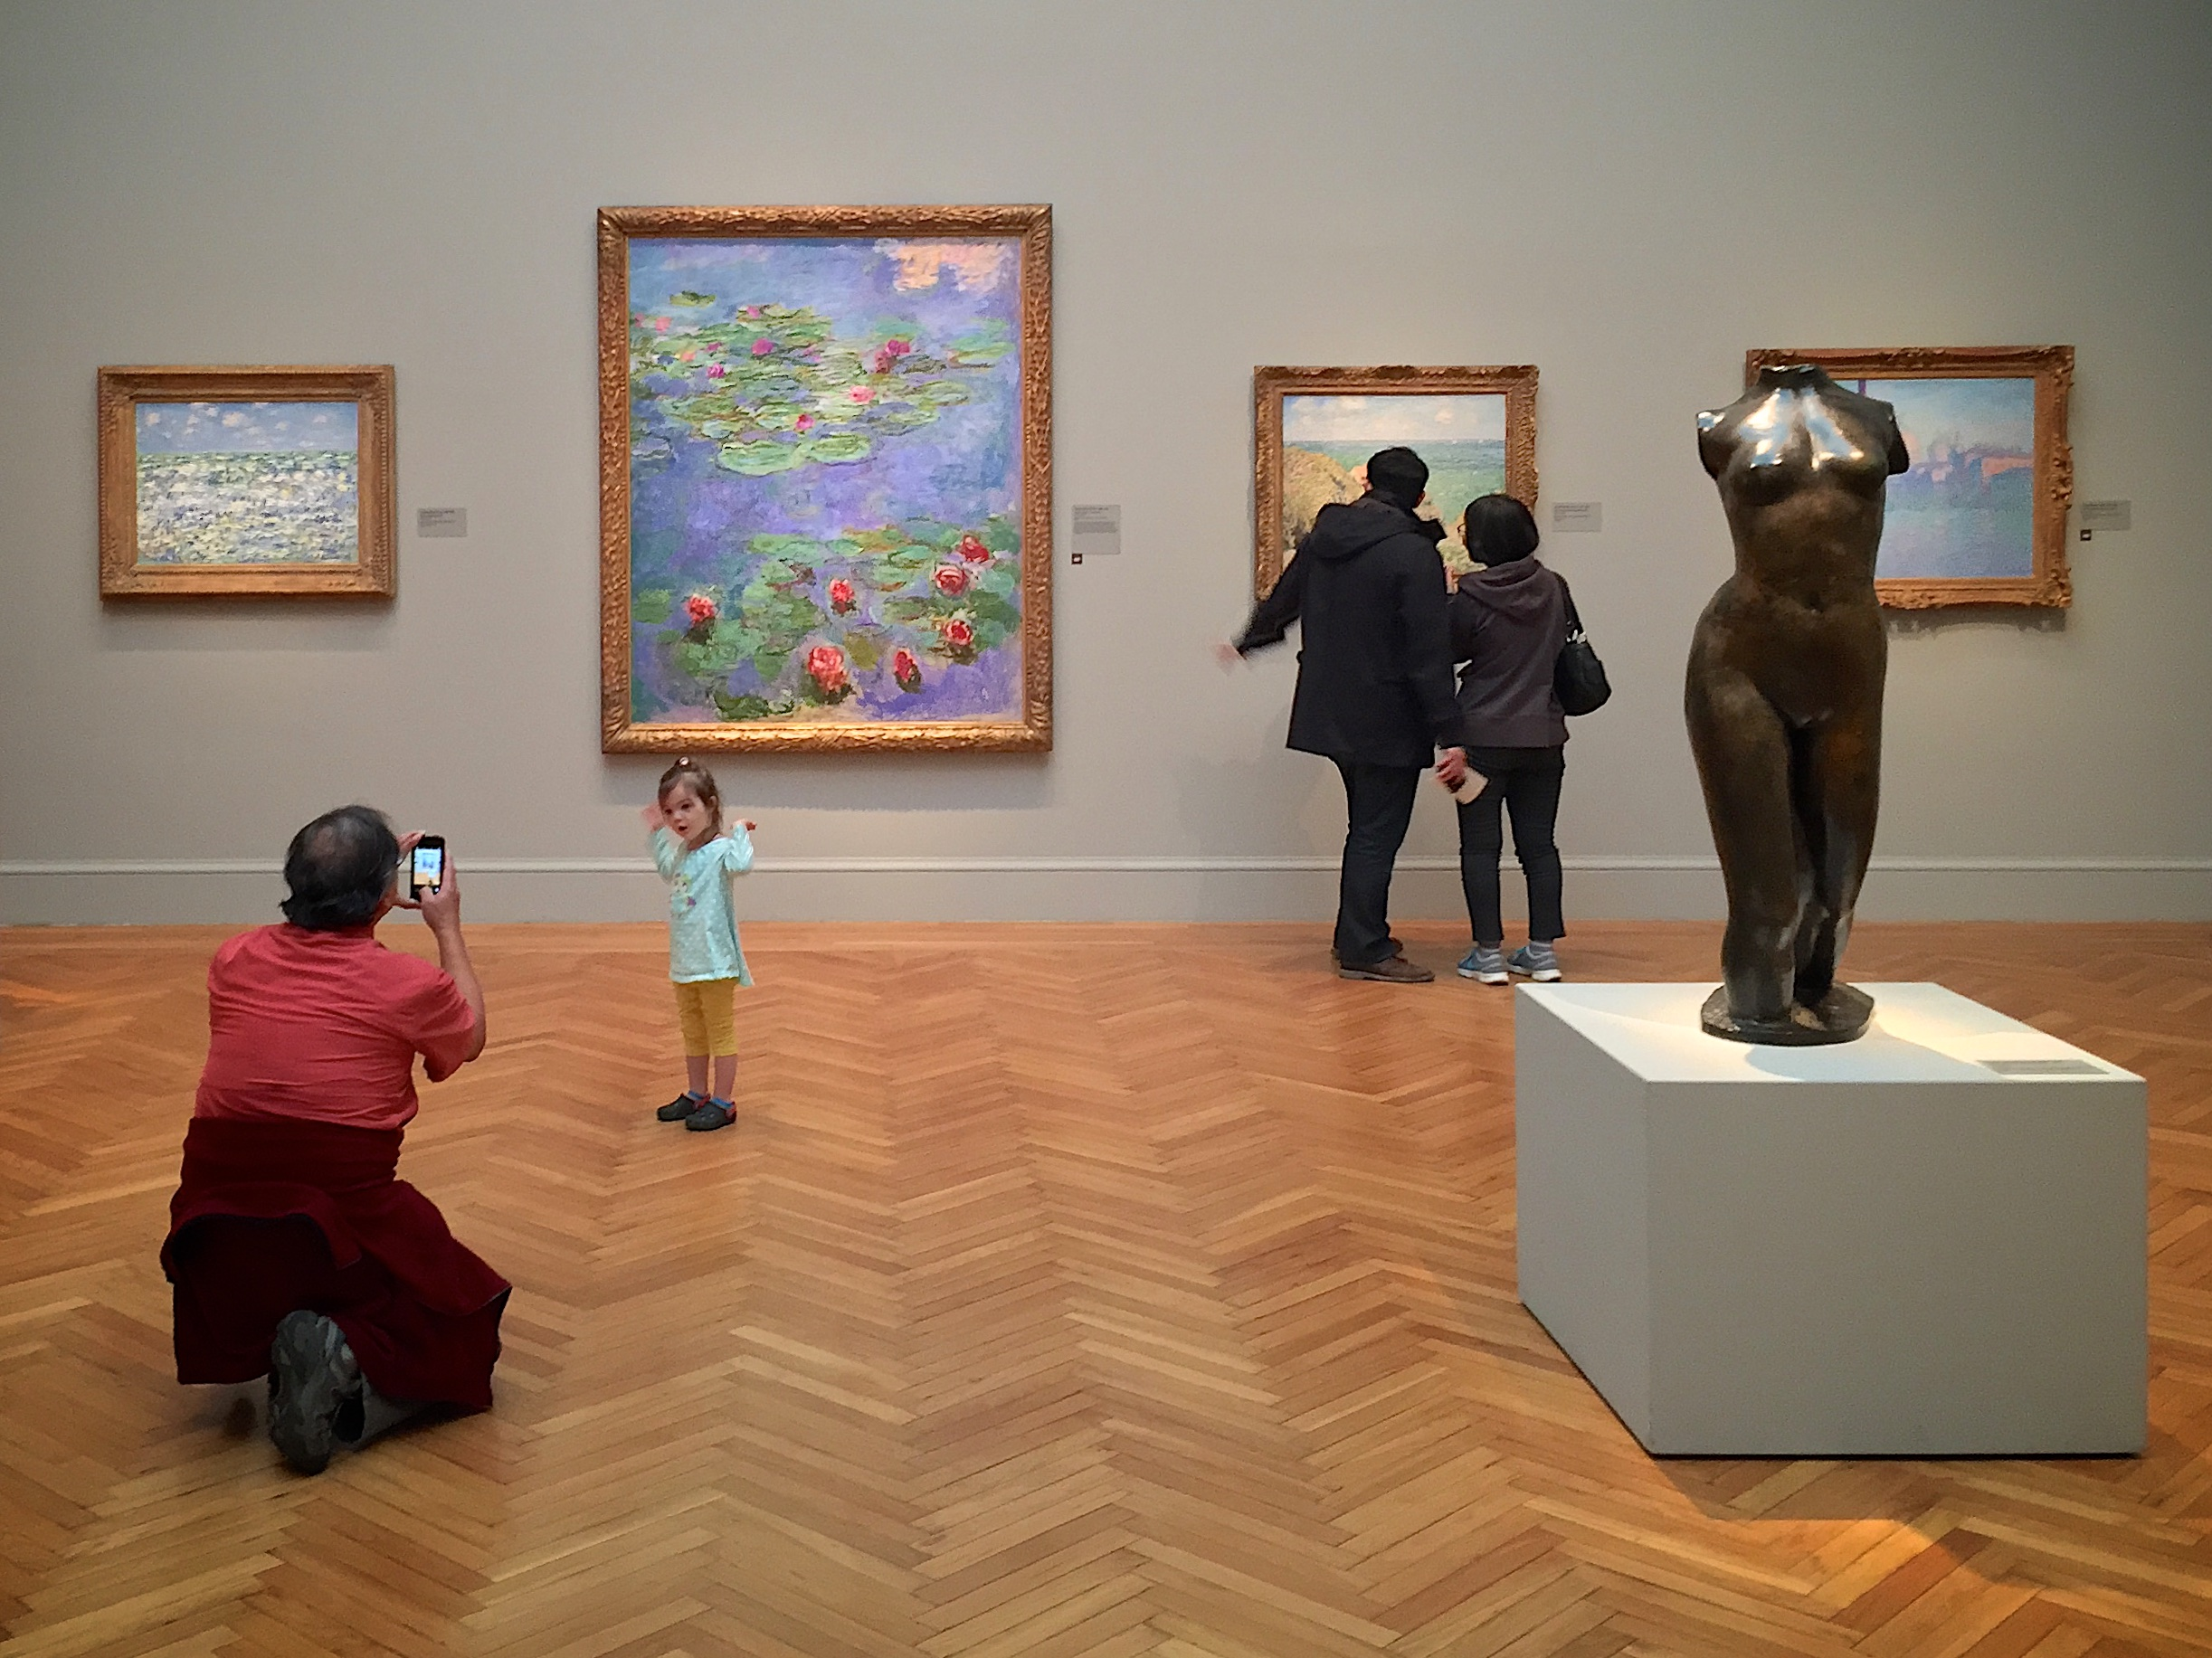 A  nother adorable kiddo enjoyed her day trip to the museum. I'm sure this pose in front of Monet's   Water Lilies  will get plenty of Likes!